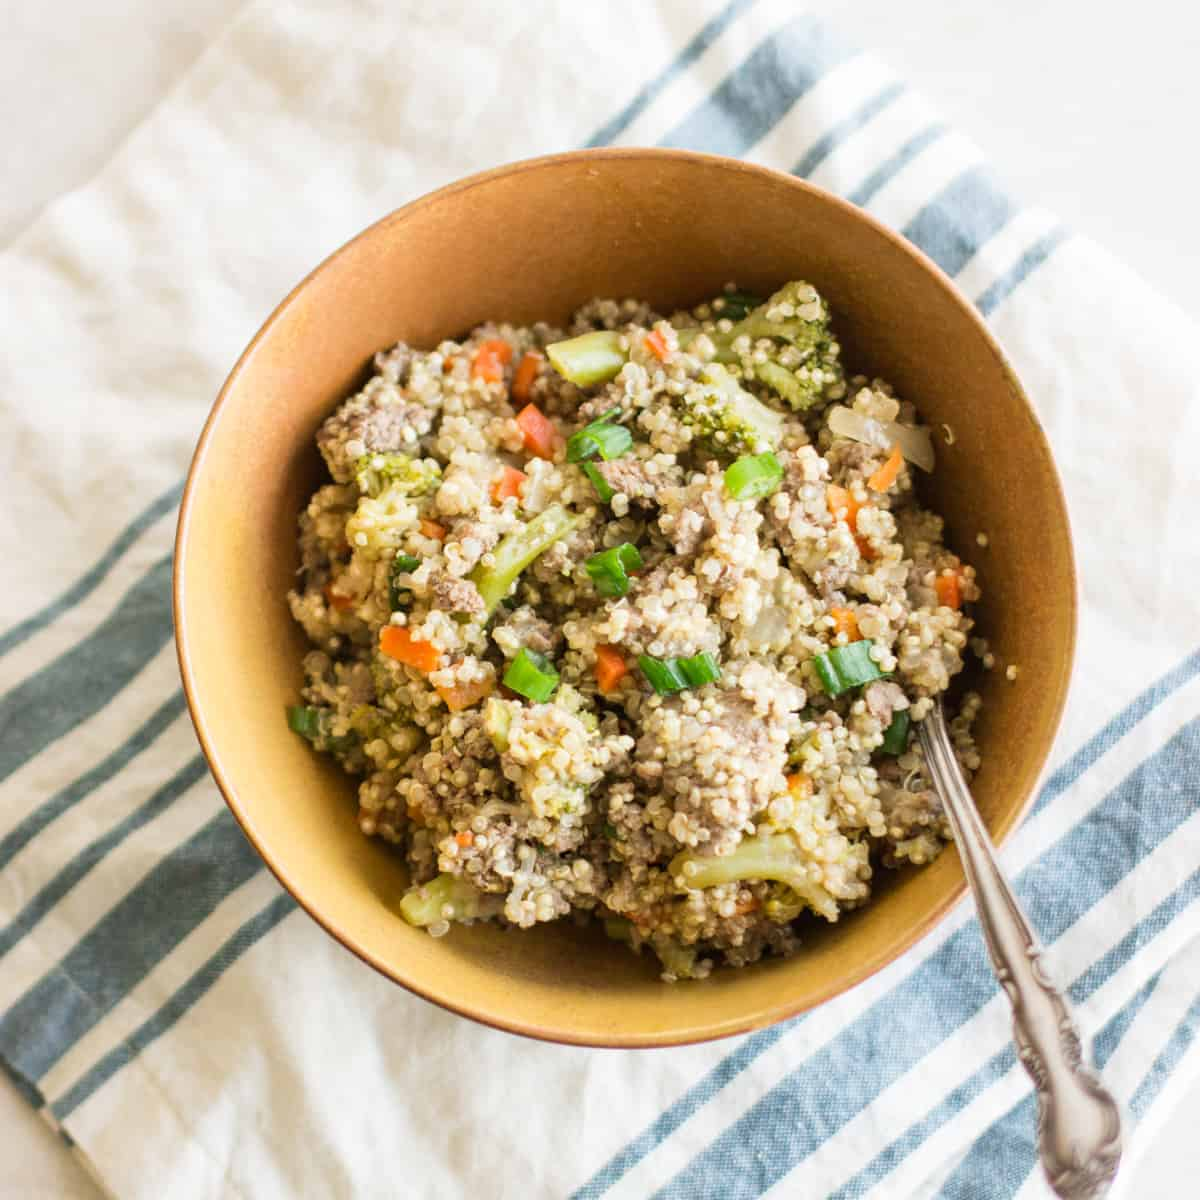 ground beef, carrots, broccoli, and scallion in a brown bowl with a spoon laid on top of folded blue and white striped napkin